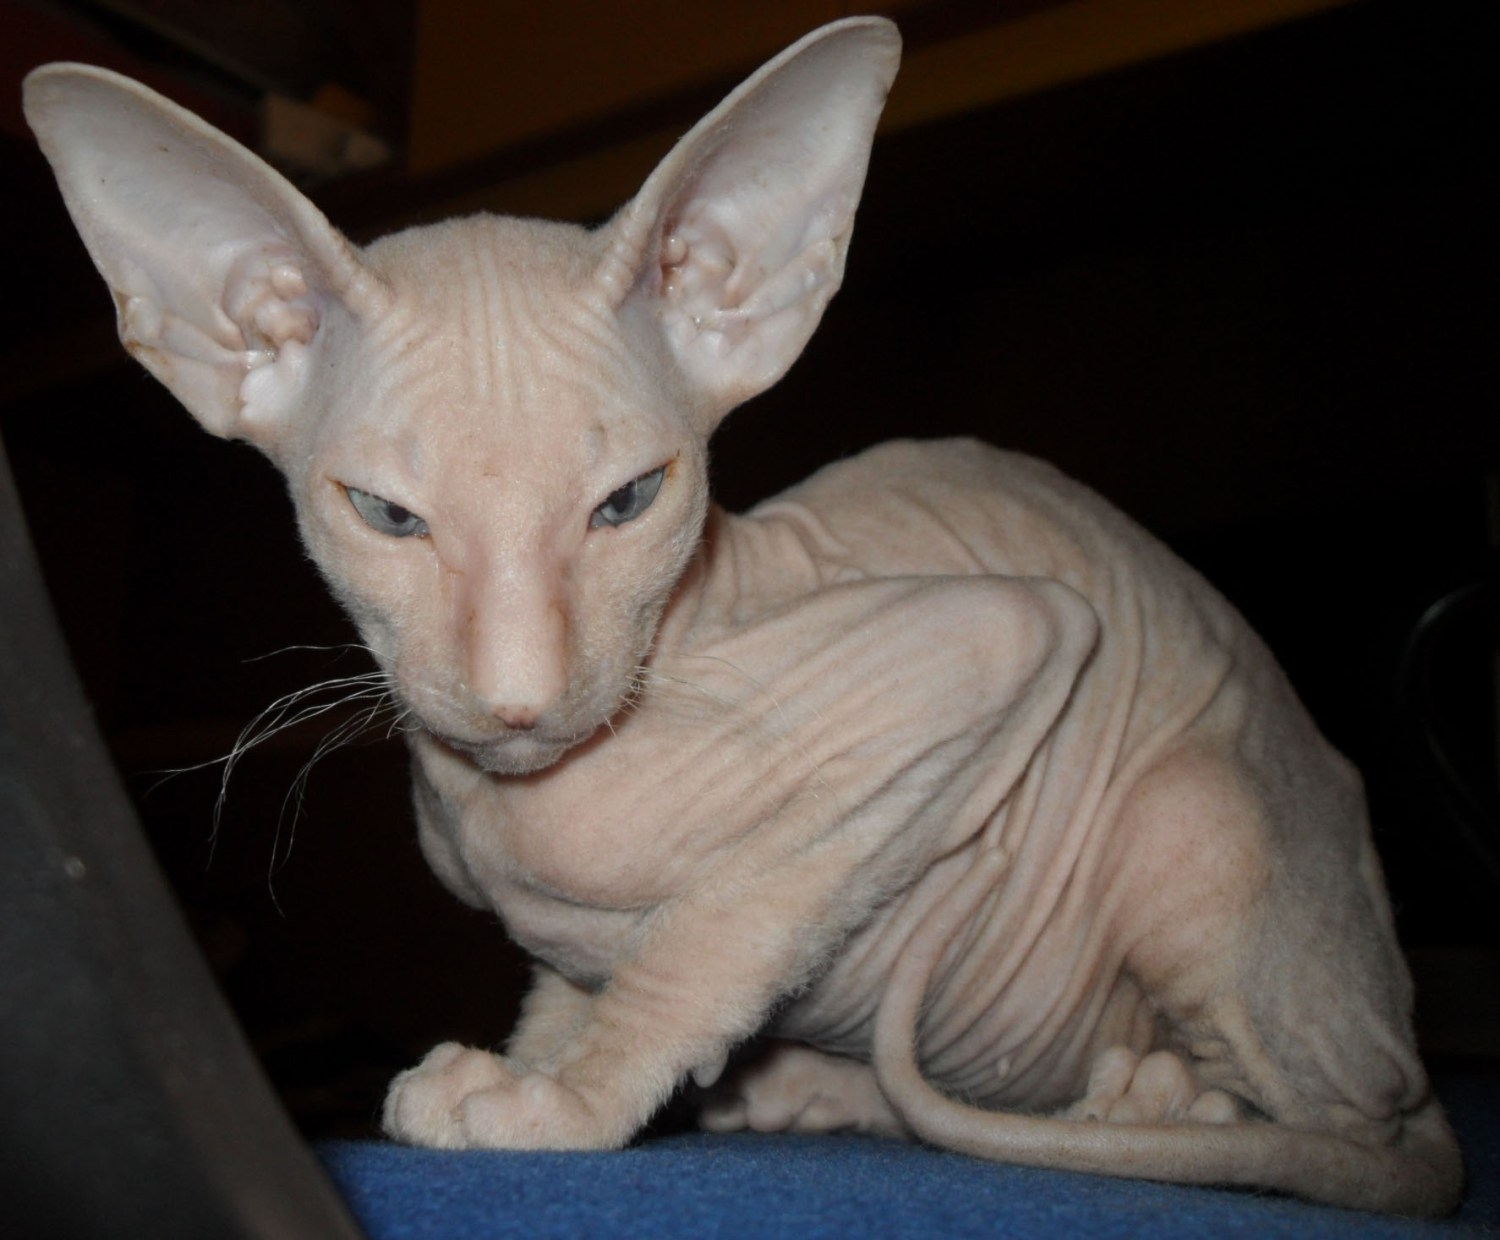 The Ugliest Cats In The World – Here Are The 6 Weirdest-looking Cat Breeds